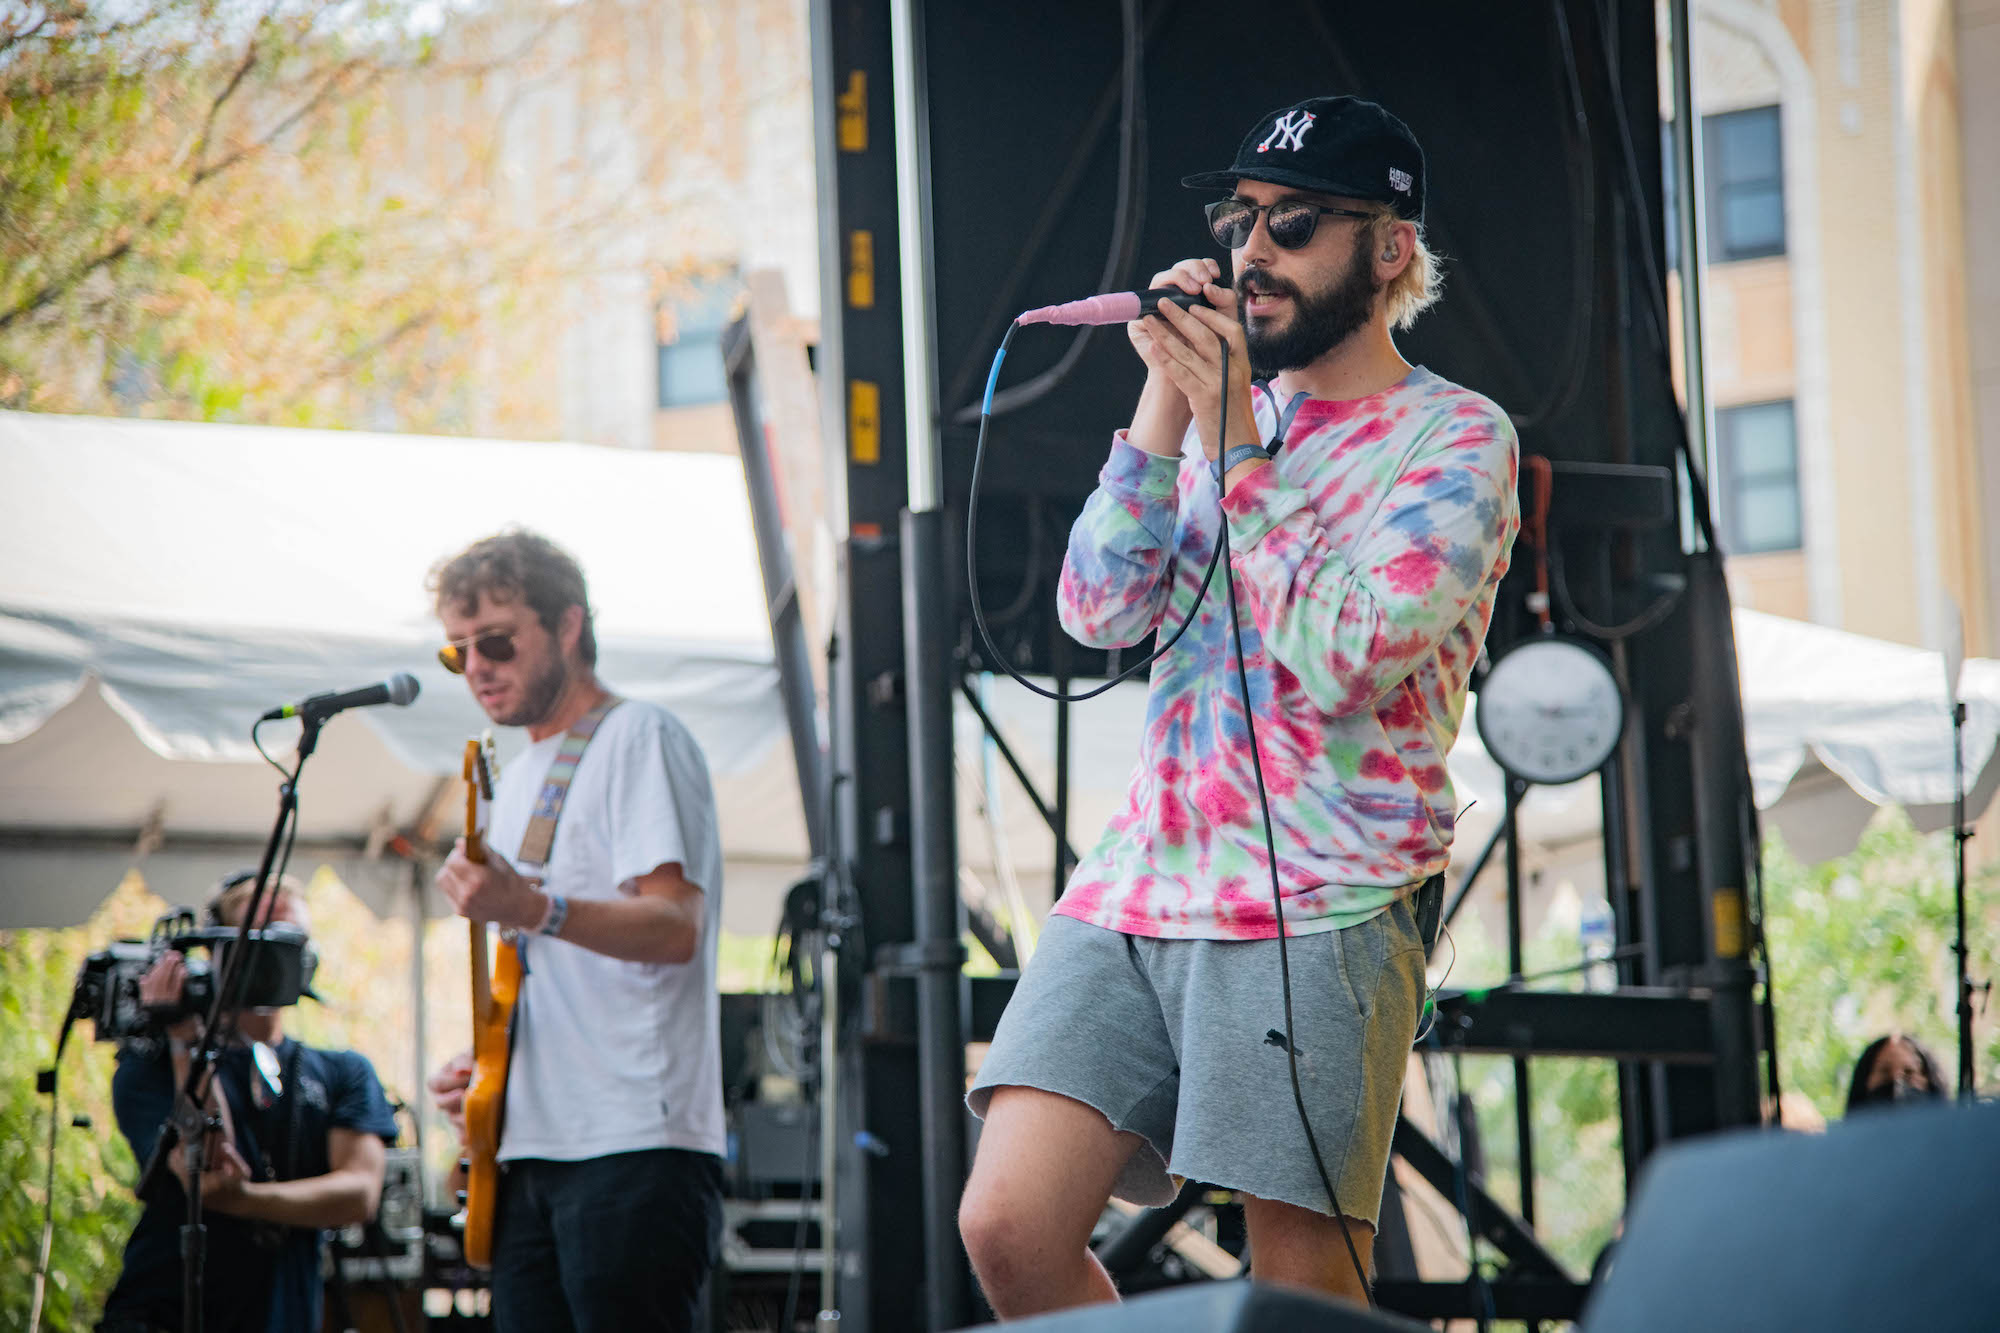 Oso Oso Live at Pitchfork [GALLERY] 4